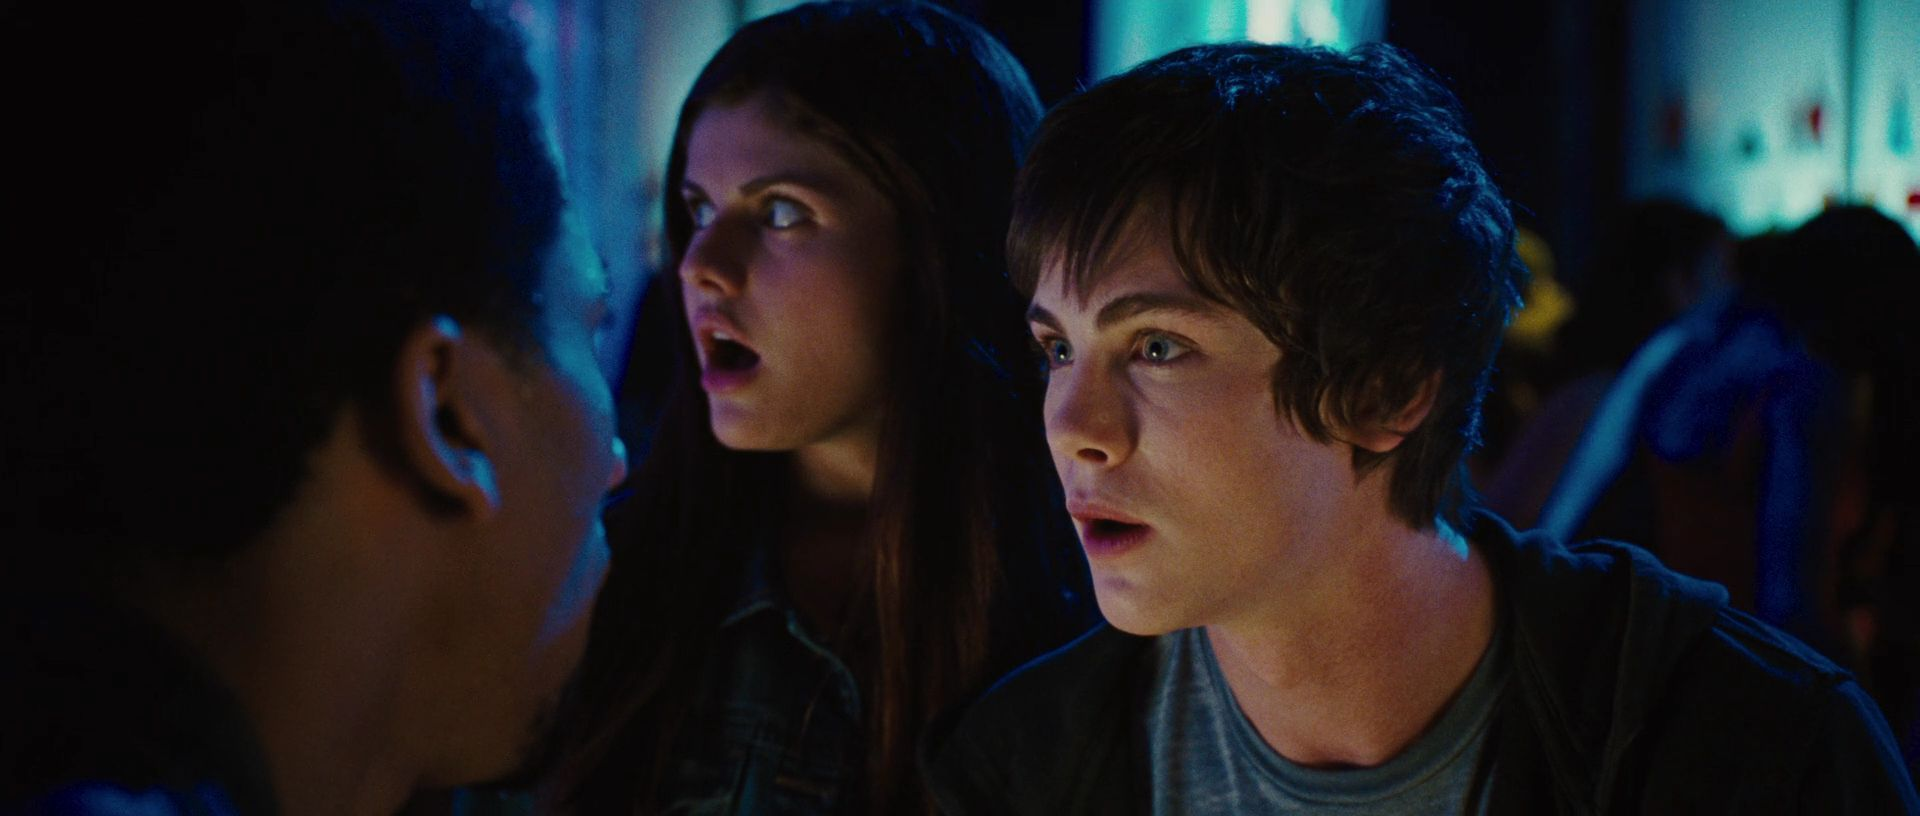 percy jackson the olympians the 20th century fox | movies in theaters and coming soon | shop for movies on blu-ray, dvd, 4k ultra hd, or digital.